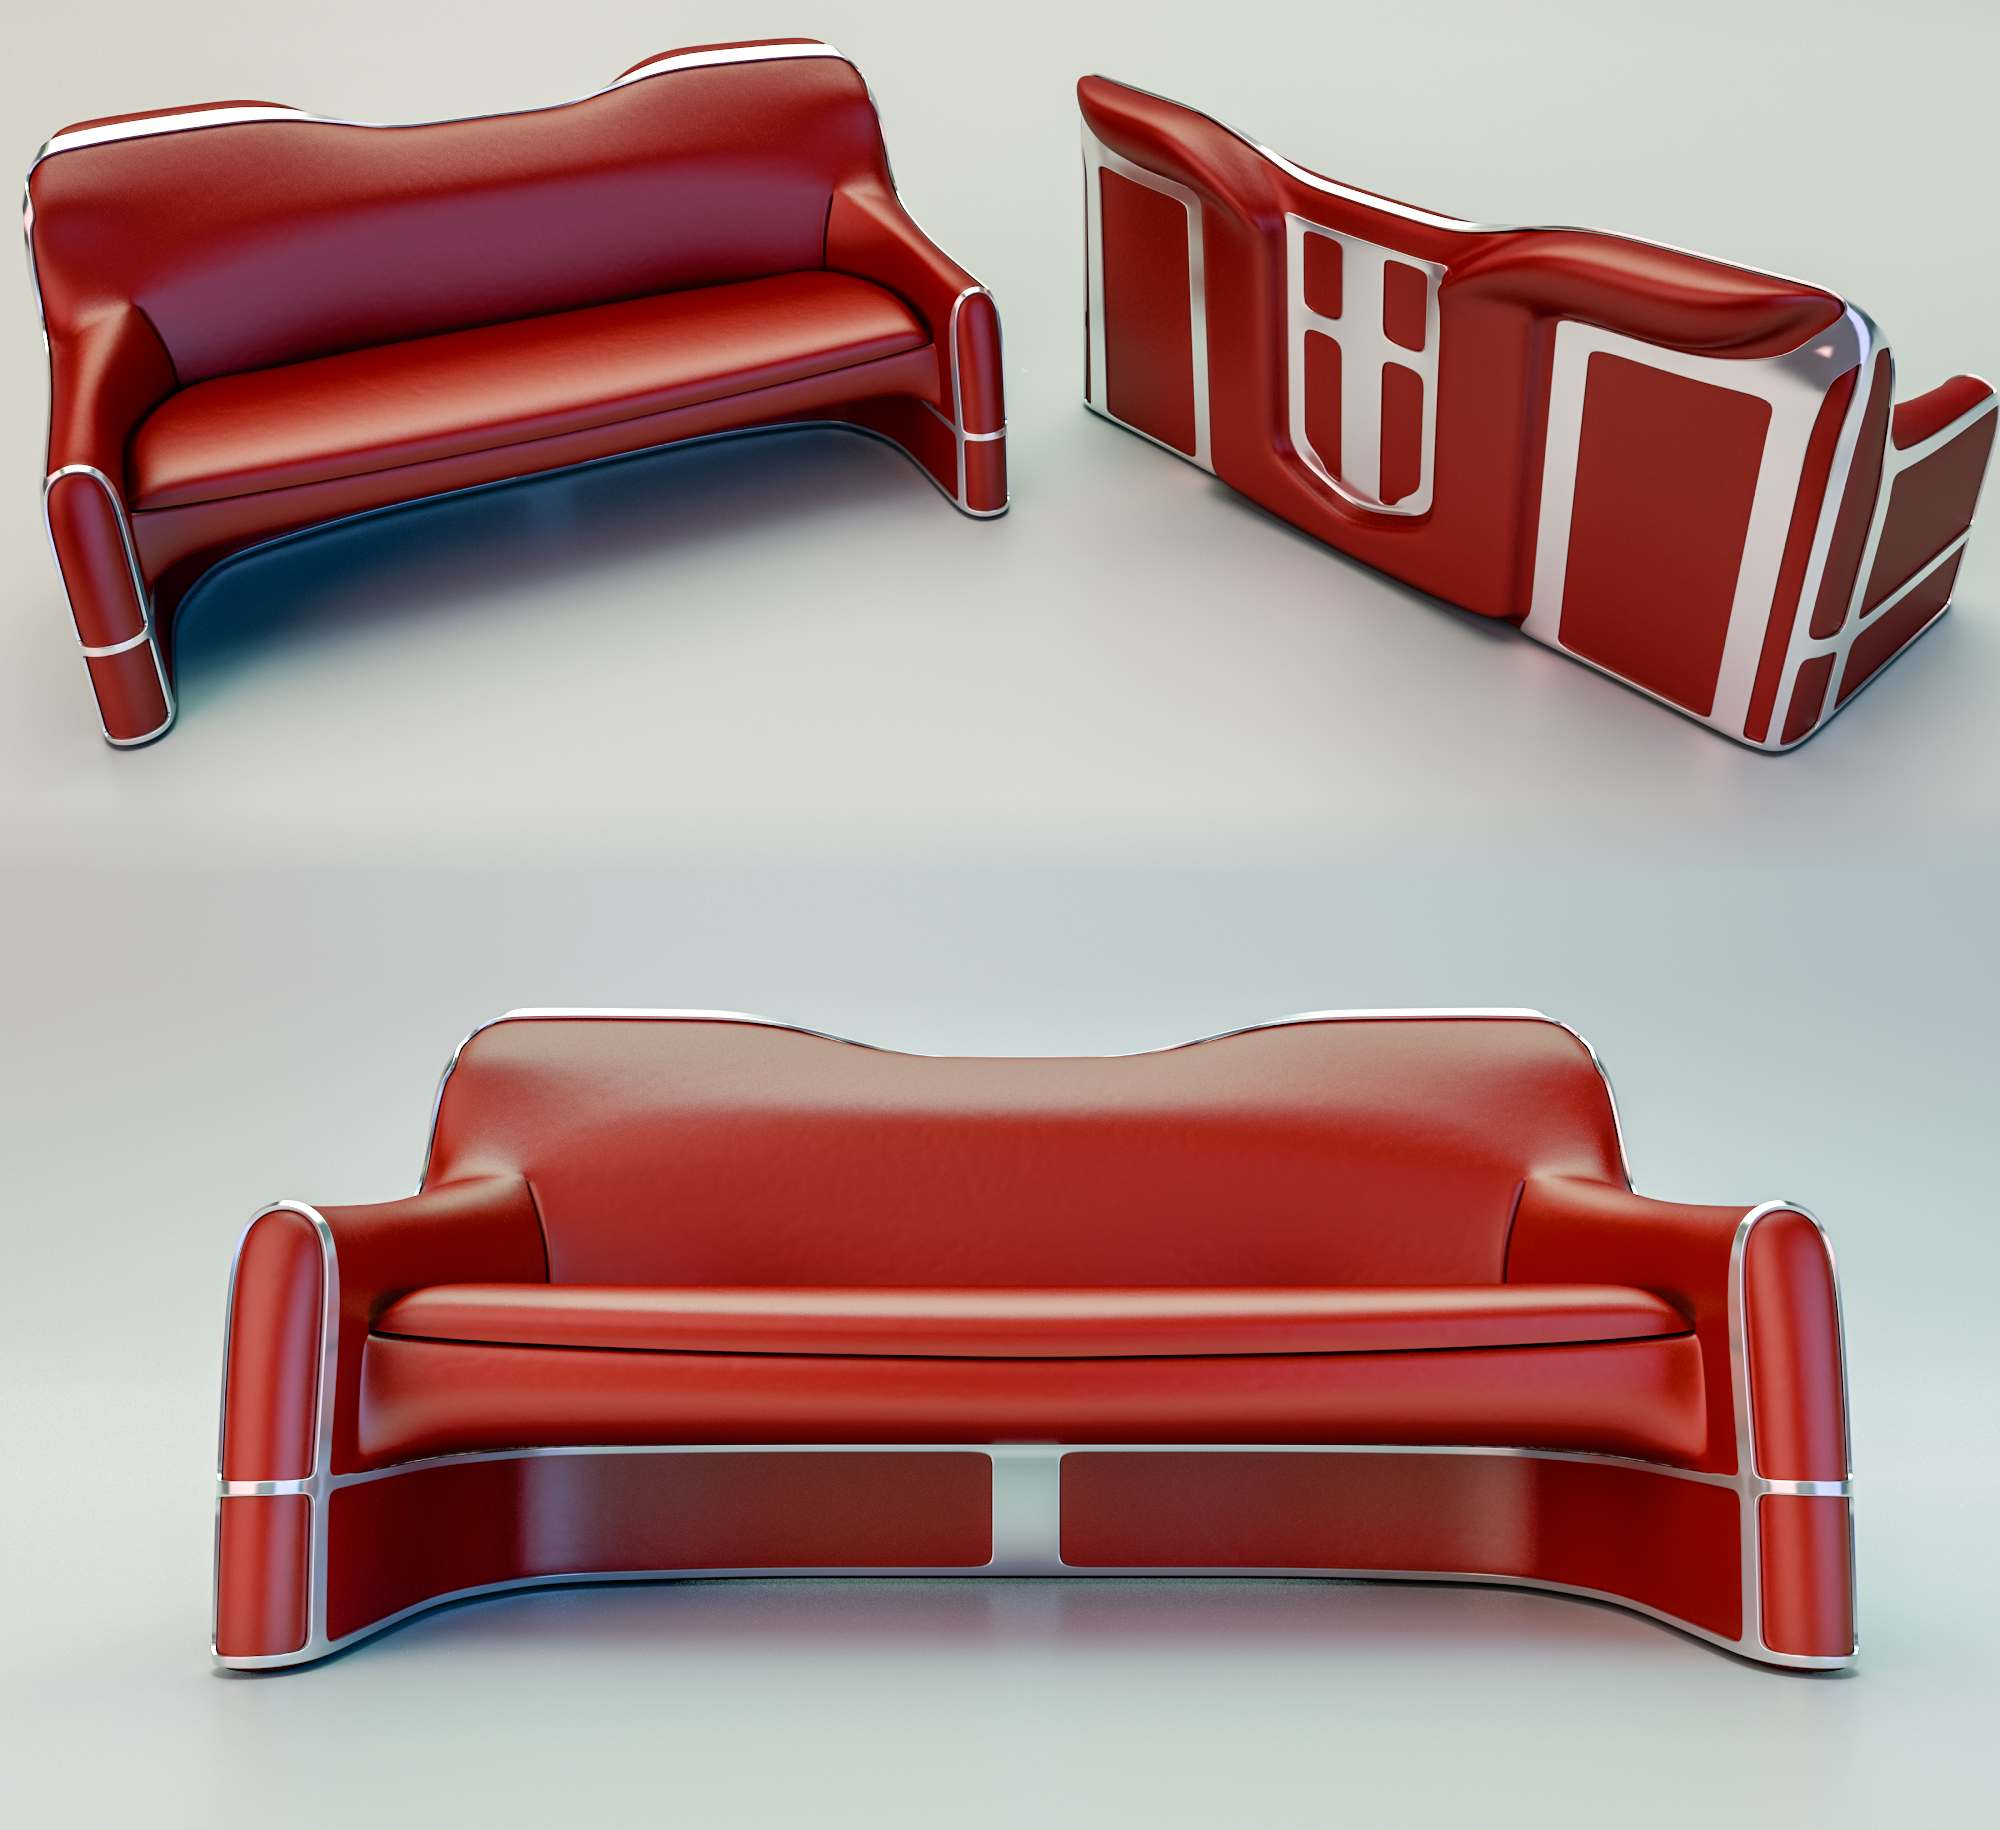 industrialdesign10 Industrial Design Modeled and Rendered in Modo by Mike Grauer